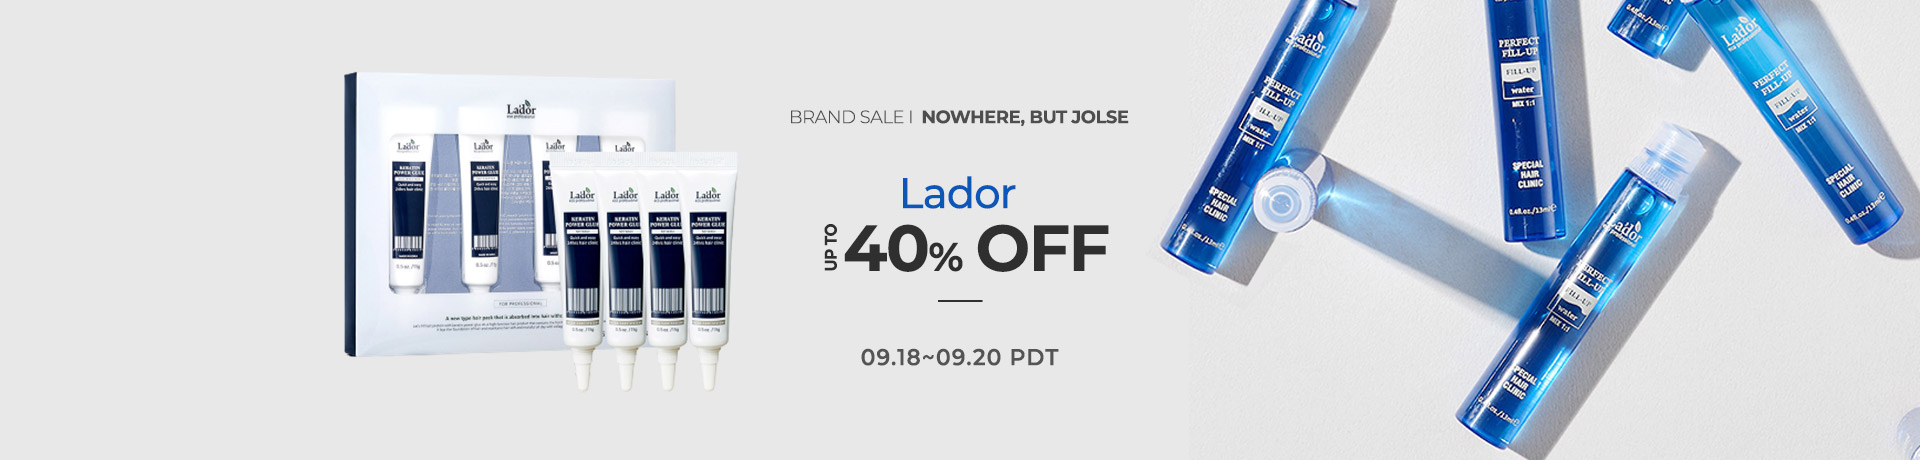 Lador Up to 40% OFF